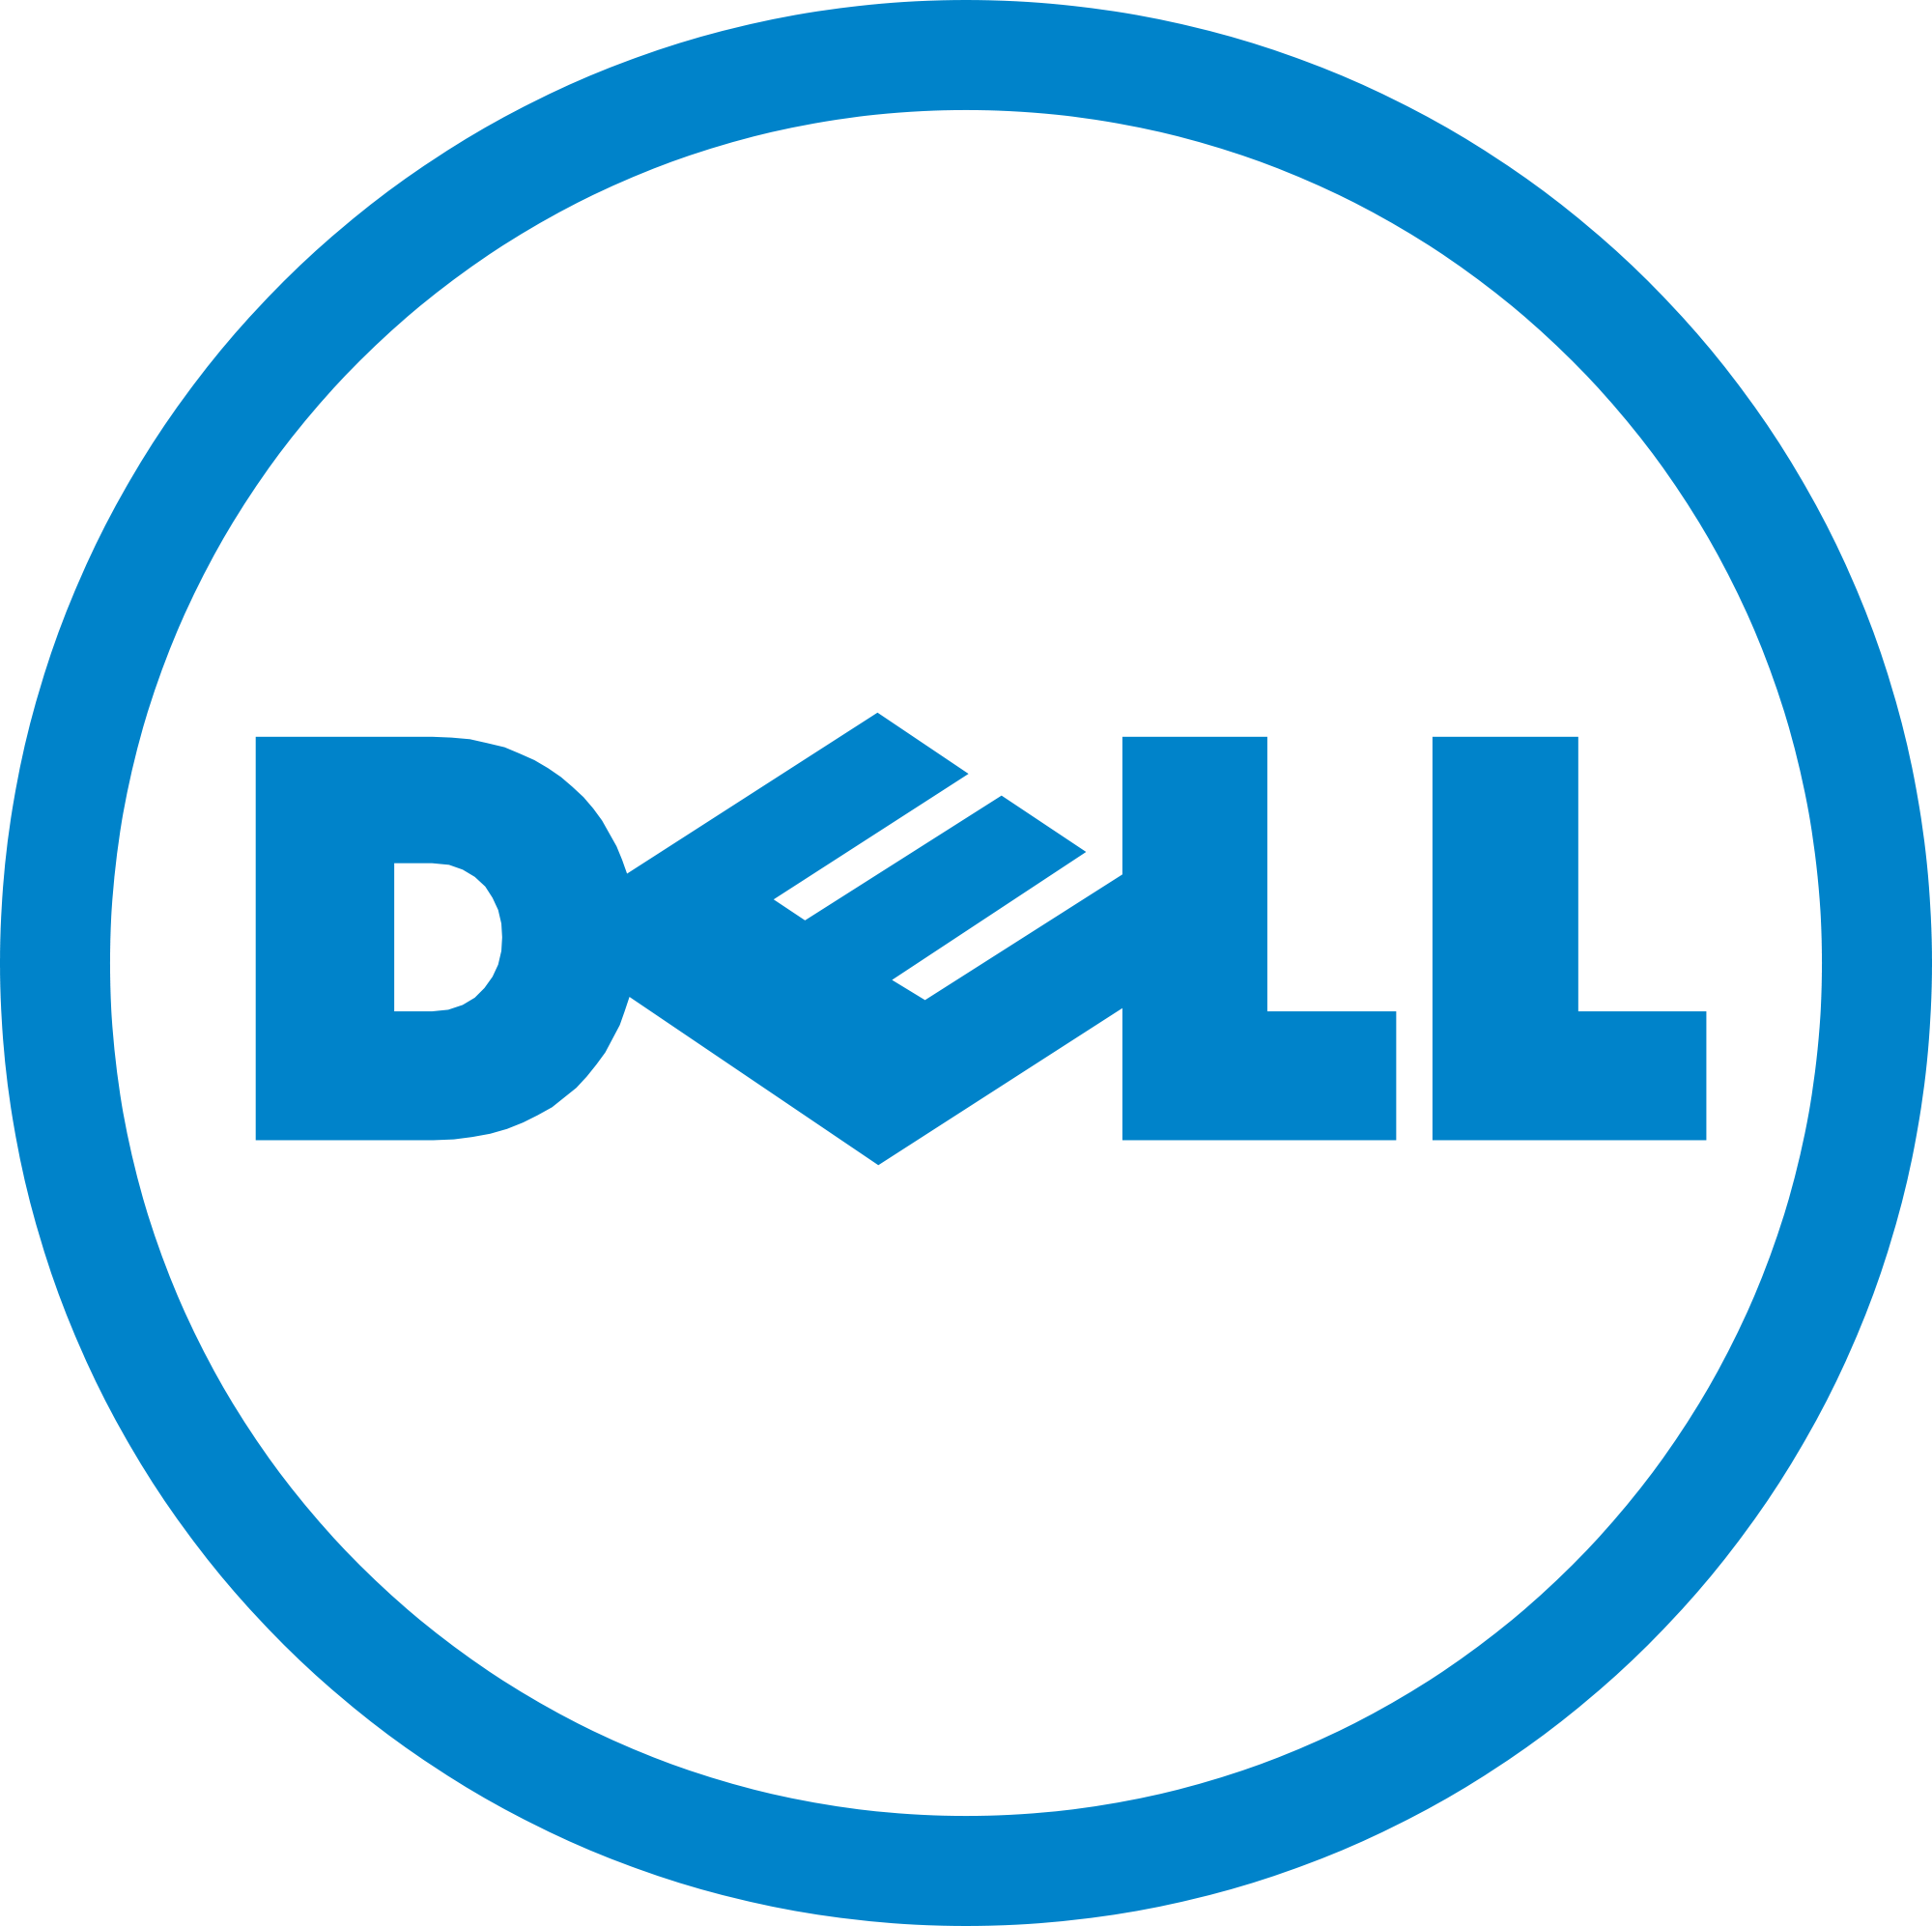 Dell to Abandon Android, Focus on Windows Tablets